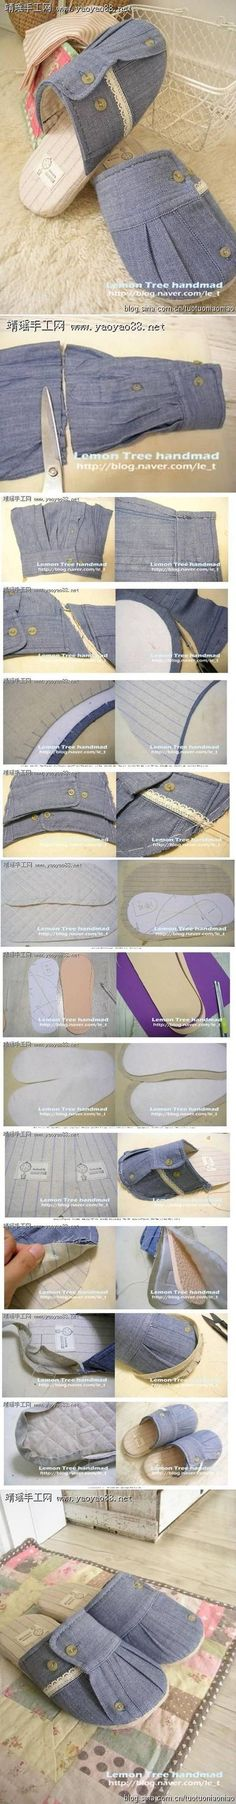 "DIY Old Clothes Cuff Slipper DIY Projects / UsefulDIY.com [   ""Taking old clothes and making some nice slippers is pretty cool. All you need are old clothes, slipper lining cushion and you will need needle and thread to"",   ""How many thumbs up to this? Slippers Slippers Gift Idea Cutest Knitted DIY: FREE Pattern for Cozy Slipper Boots"",   "">>> More Free Instructions Free Tutorials Free Craft Ideas"",   ""Mom"